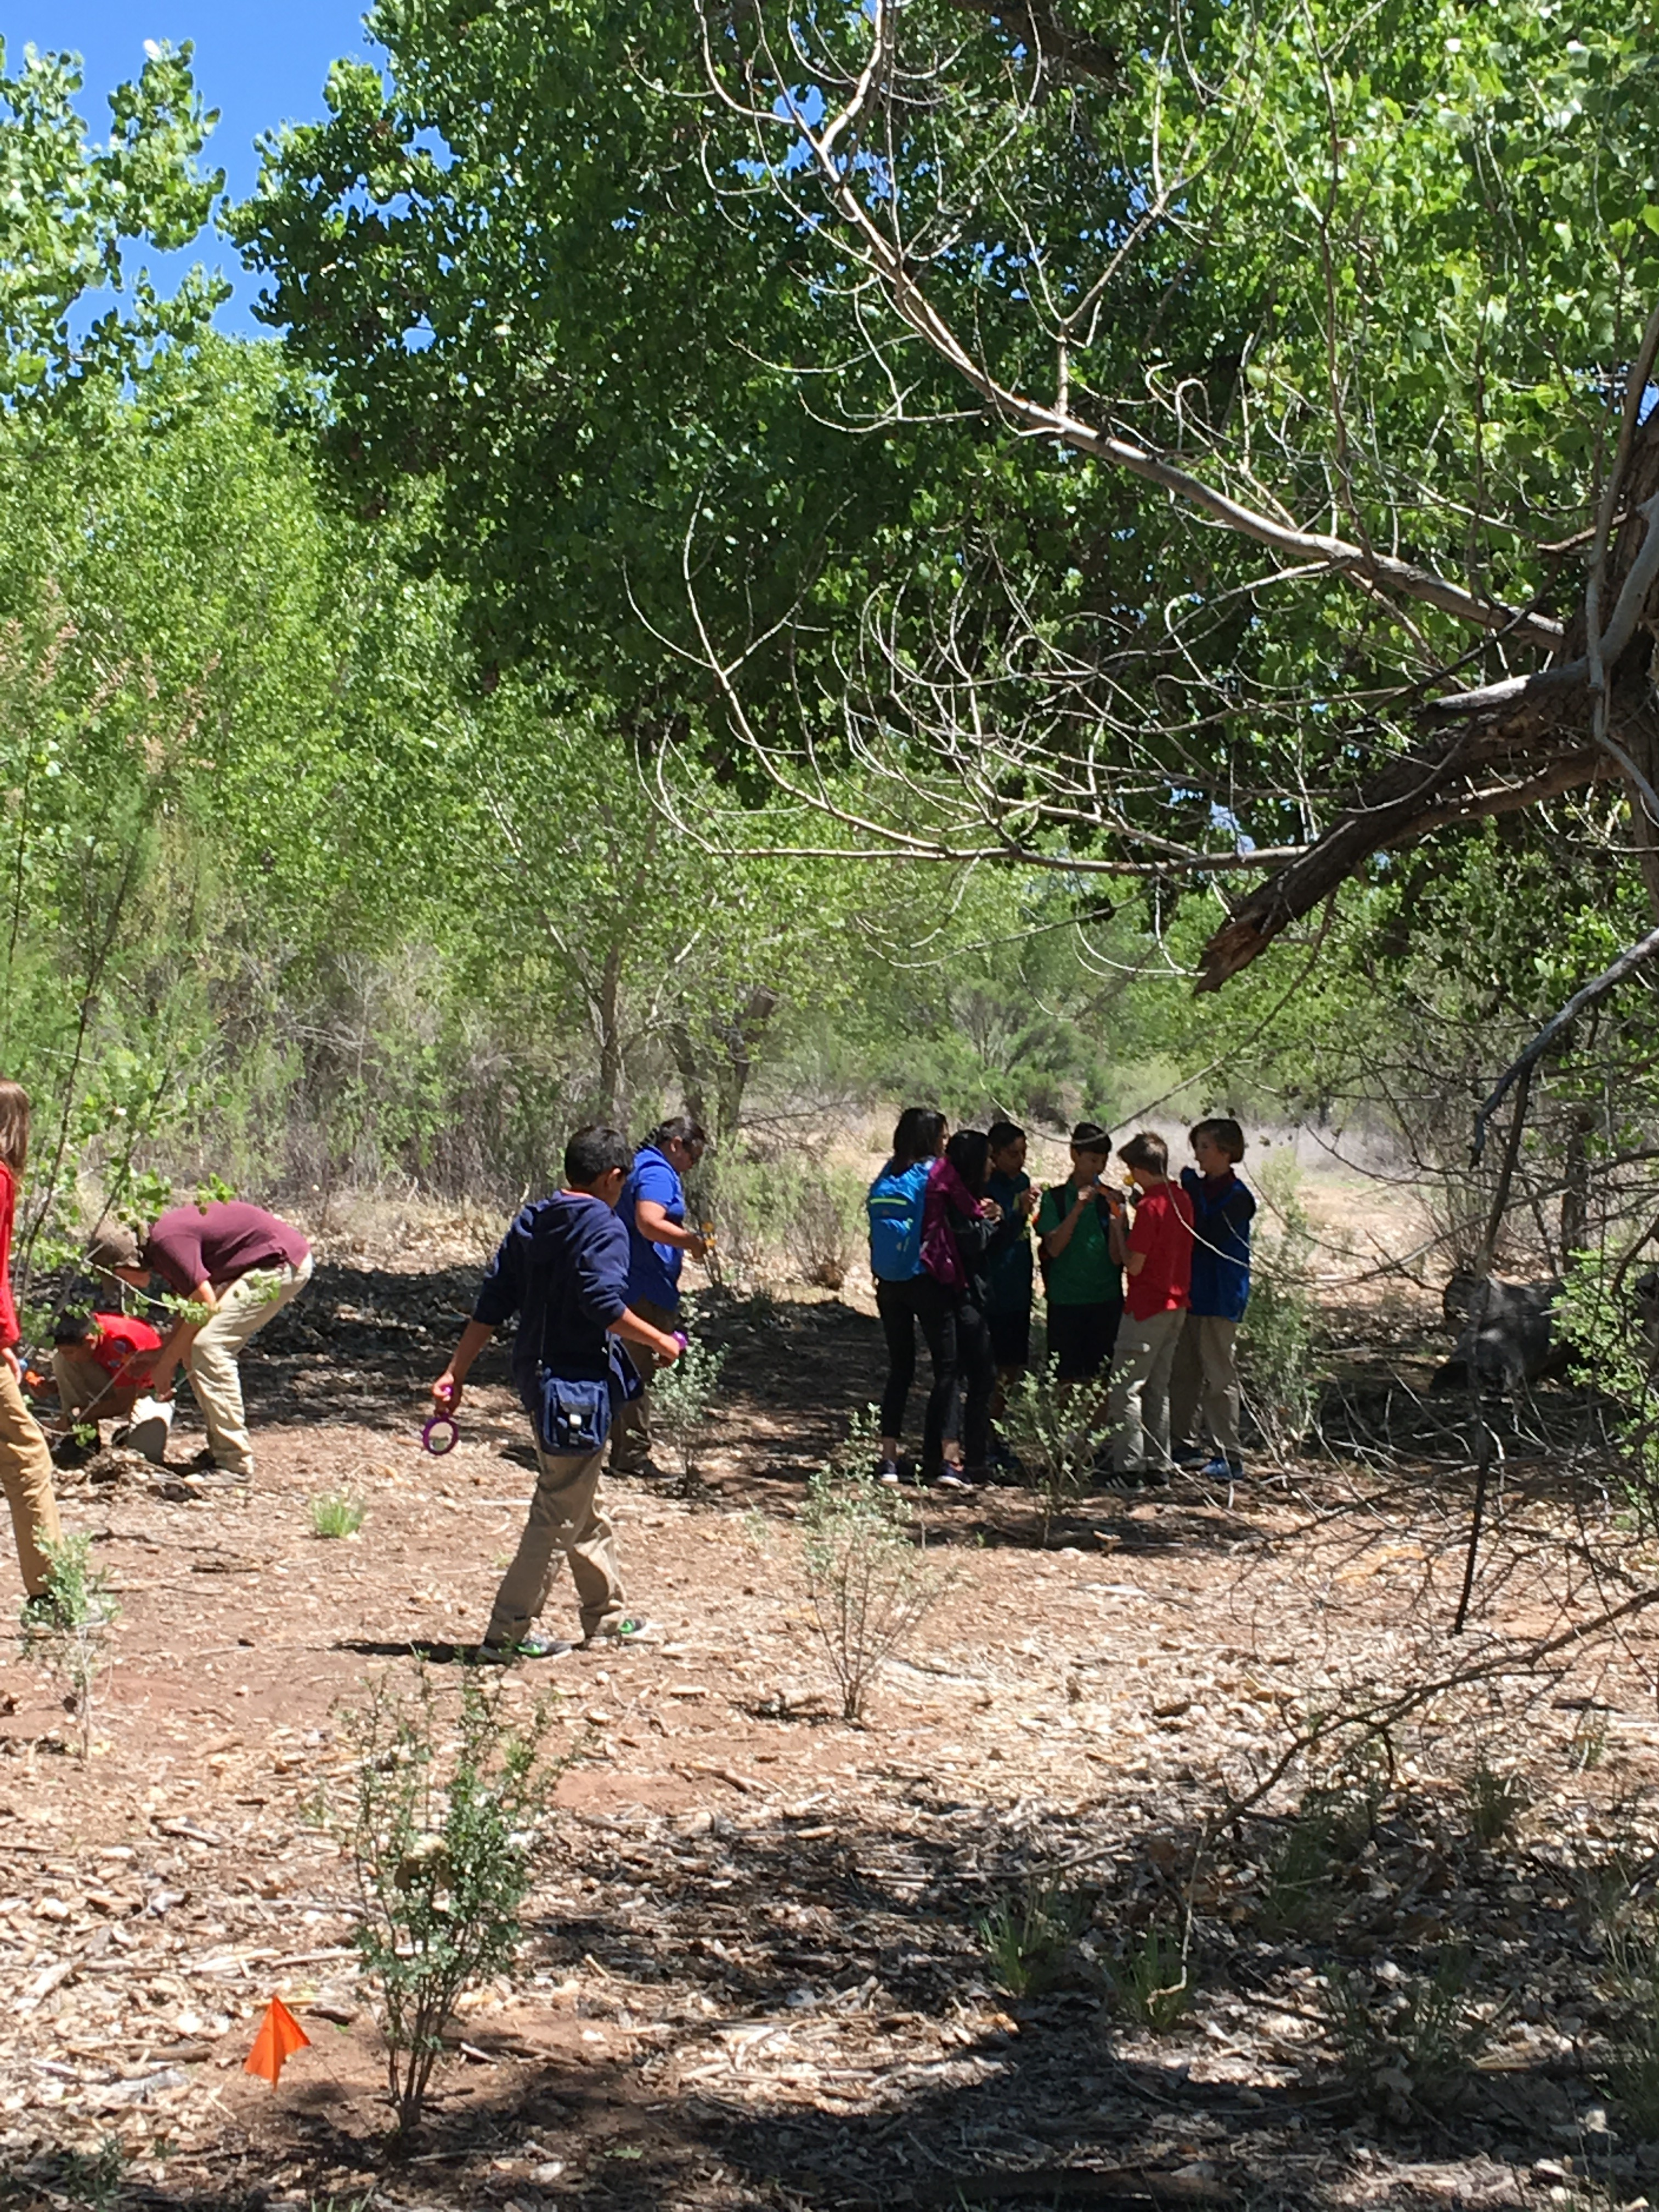 Area children collect samples and learn about the natural world within the Rio Grande Bosque.